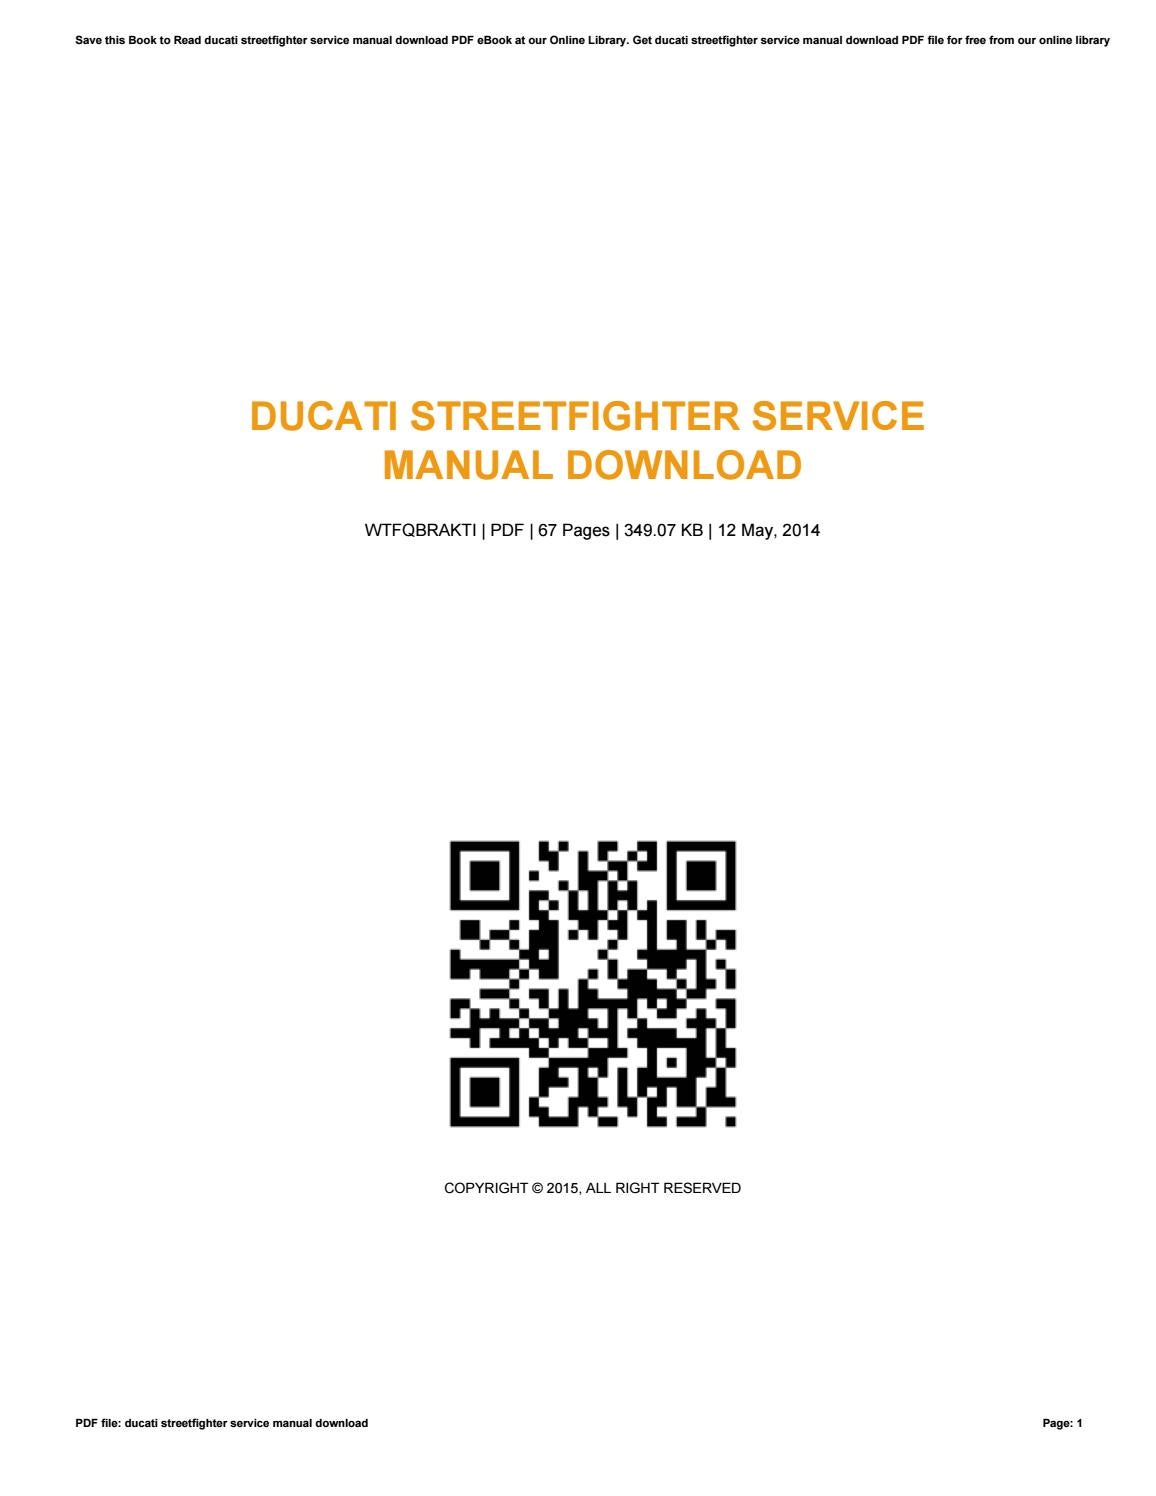 Ducati streetfighter service manual download by